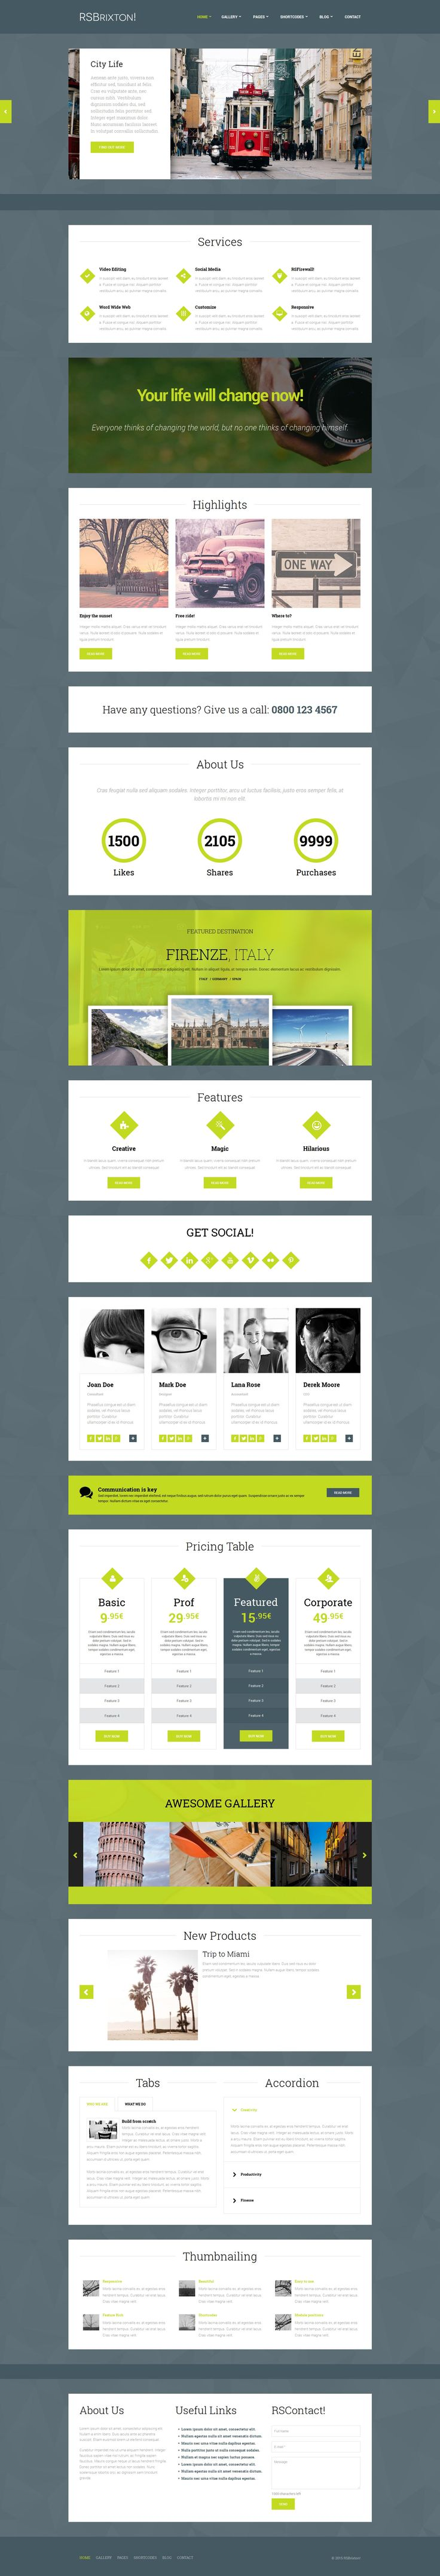 Kick-start your business with #RSBrixton!, a clean modern #website #Template #Design that assures great #UserExperience!